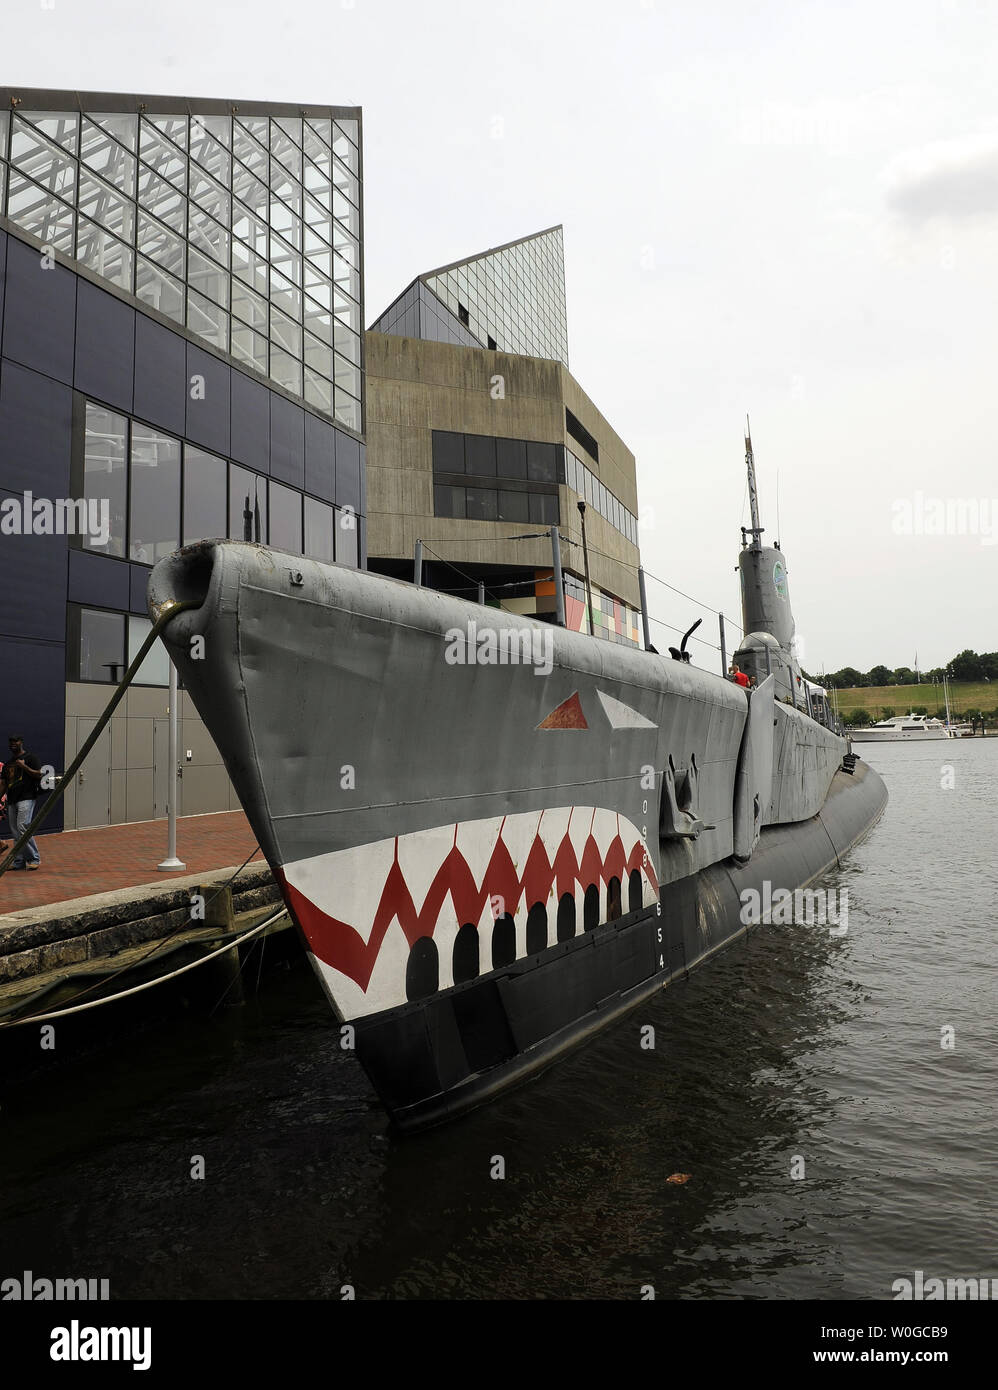 The USS Torsk, the last submarine to sink a ship in World War II, is